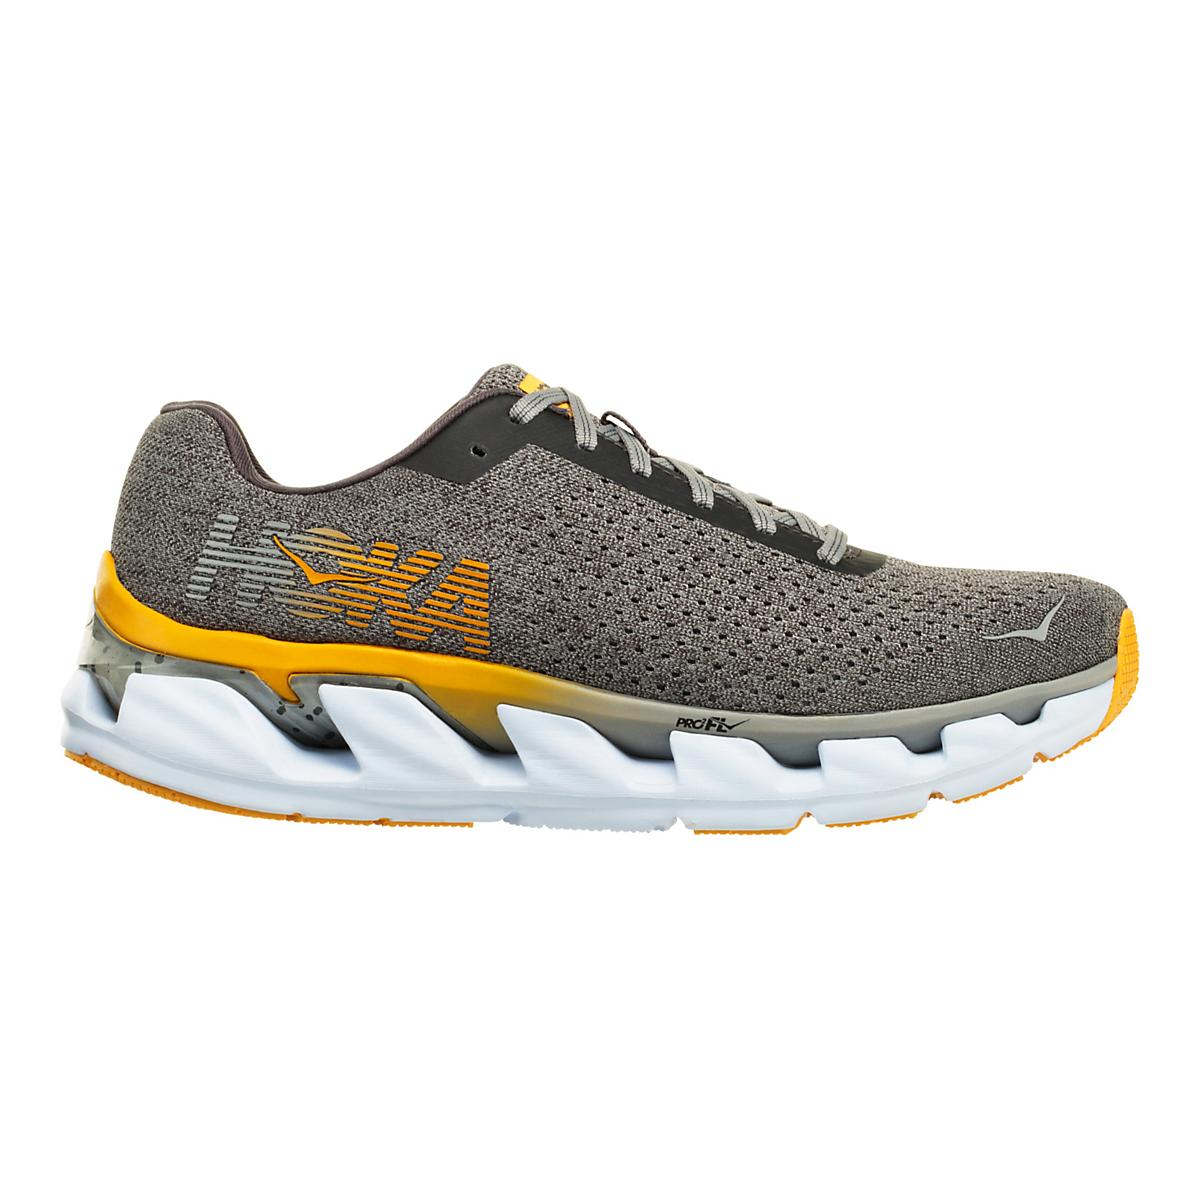 Mens Hoka One One Elevon Running Shoe at Road Runner Sports 108865c47ce